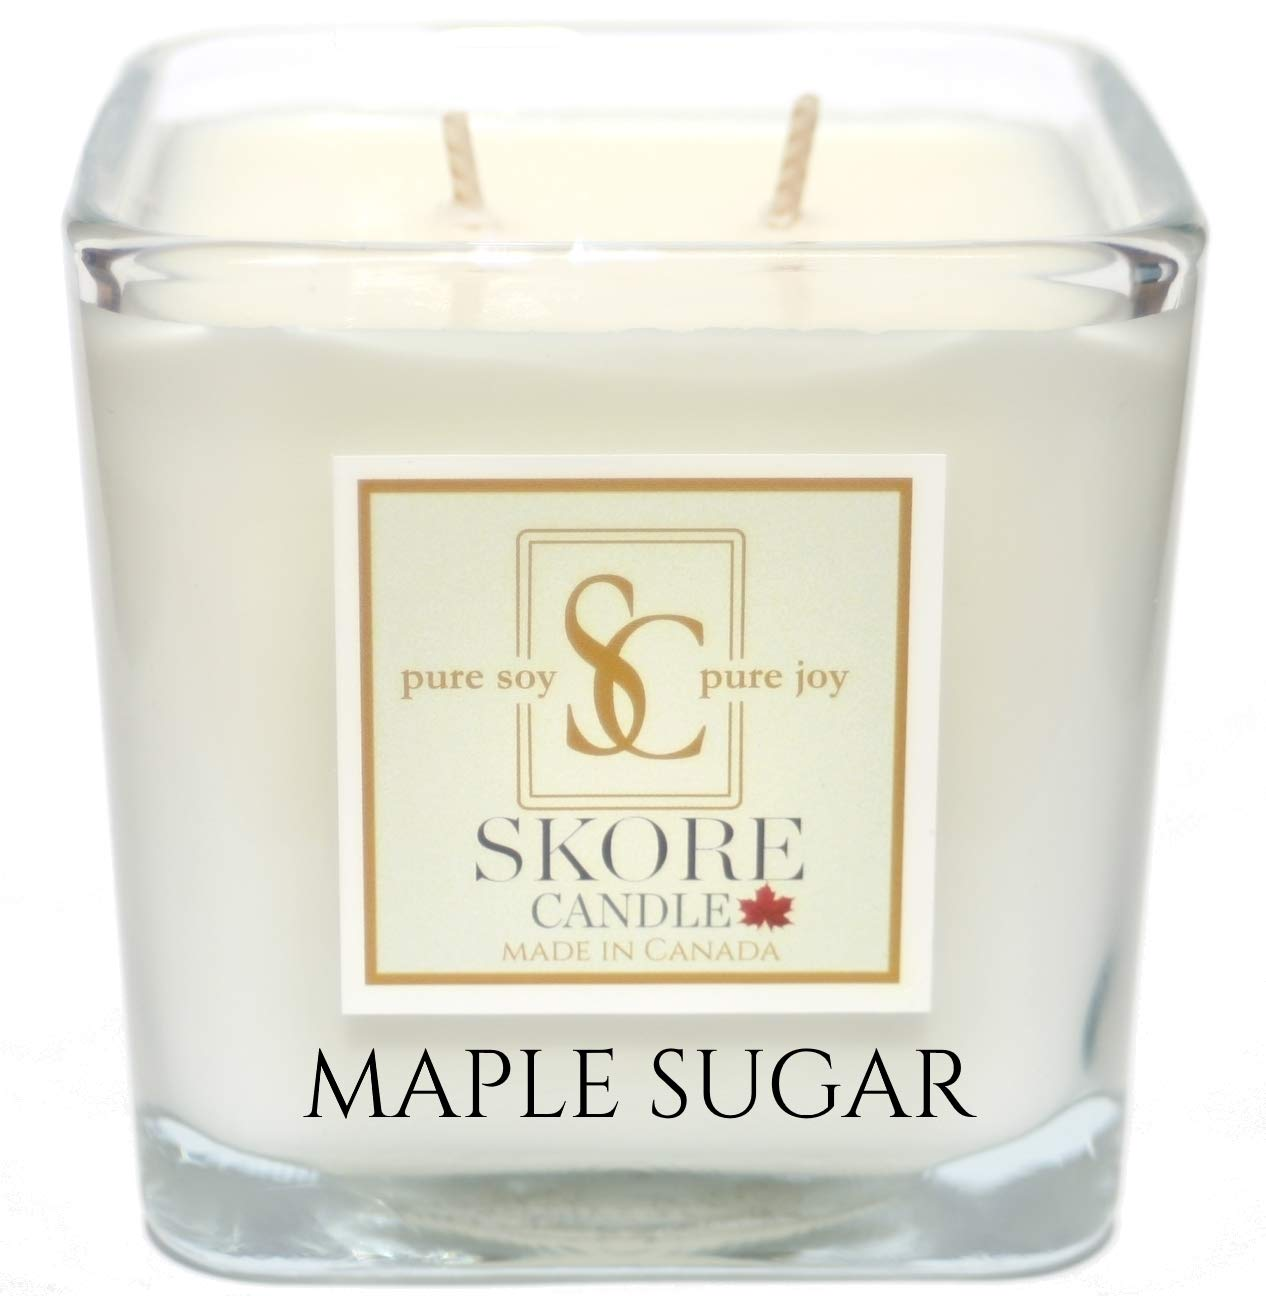 Skore Candle Maple Sugar Scented Soy Candles - Made in Canada with 100% pure natural soy wax. Large 14 oz Aromatherapy 2 wick in reusable square glass jar. Create beautiful scents in your living & dining room while eliminating kitchen & home odors